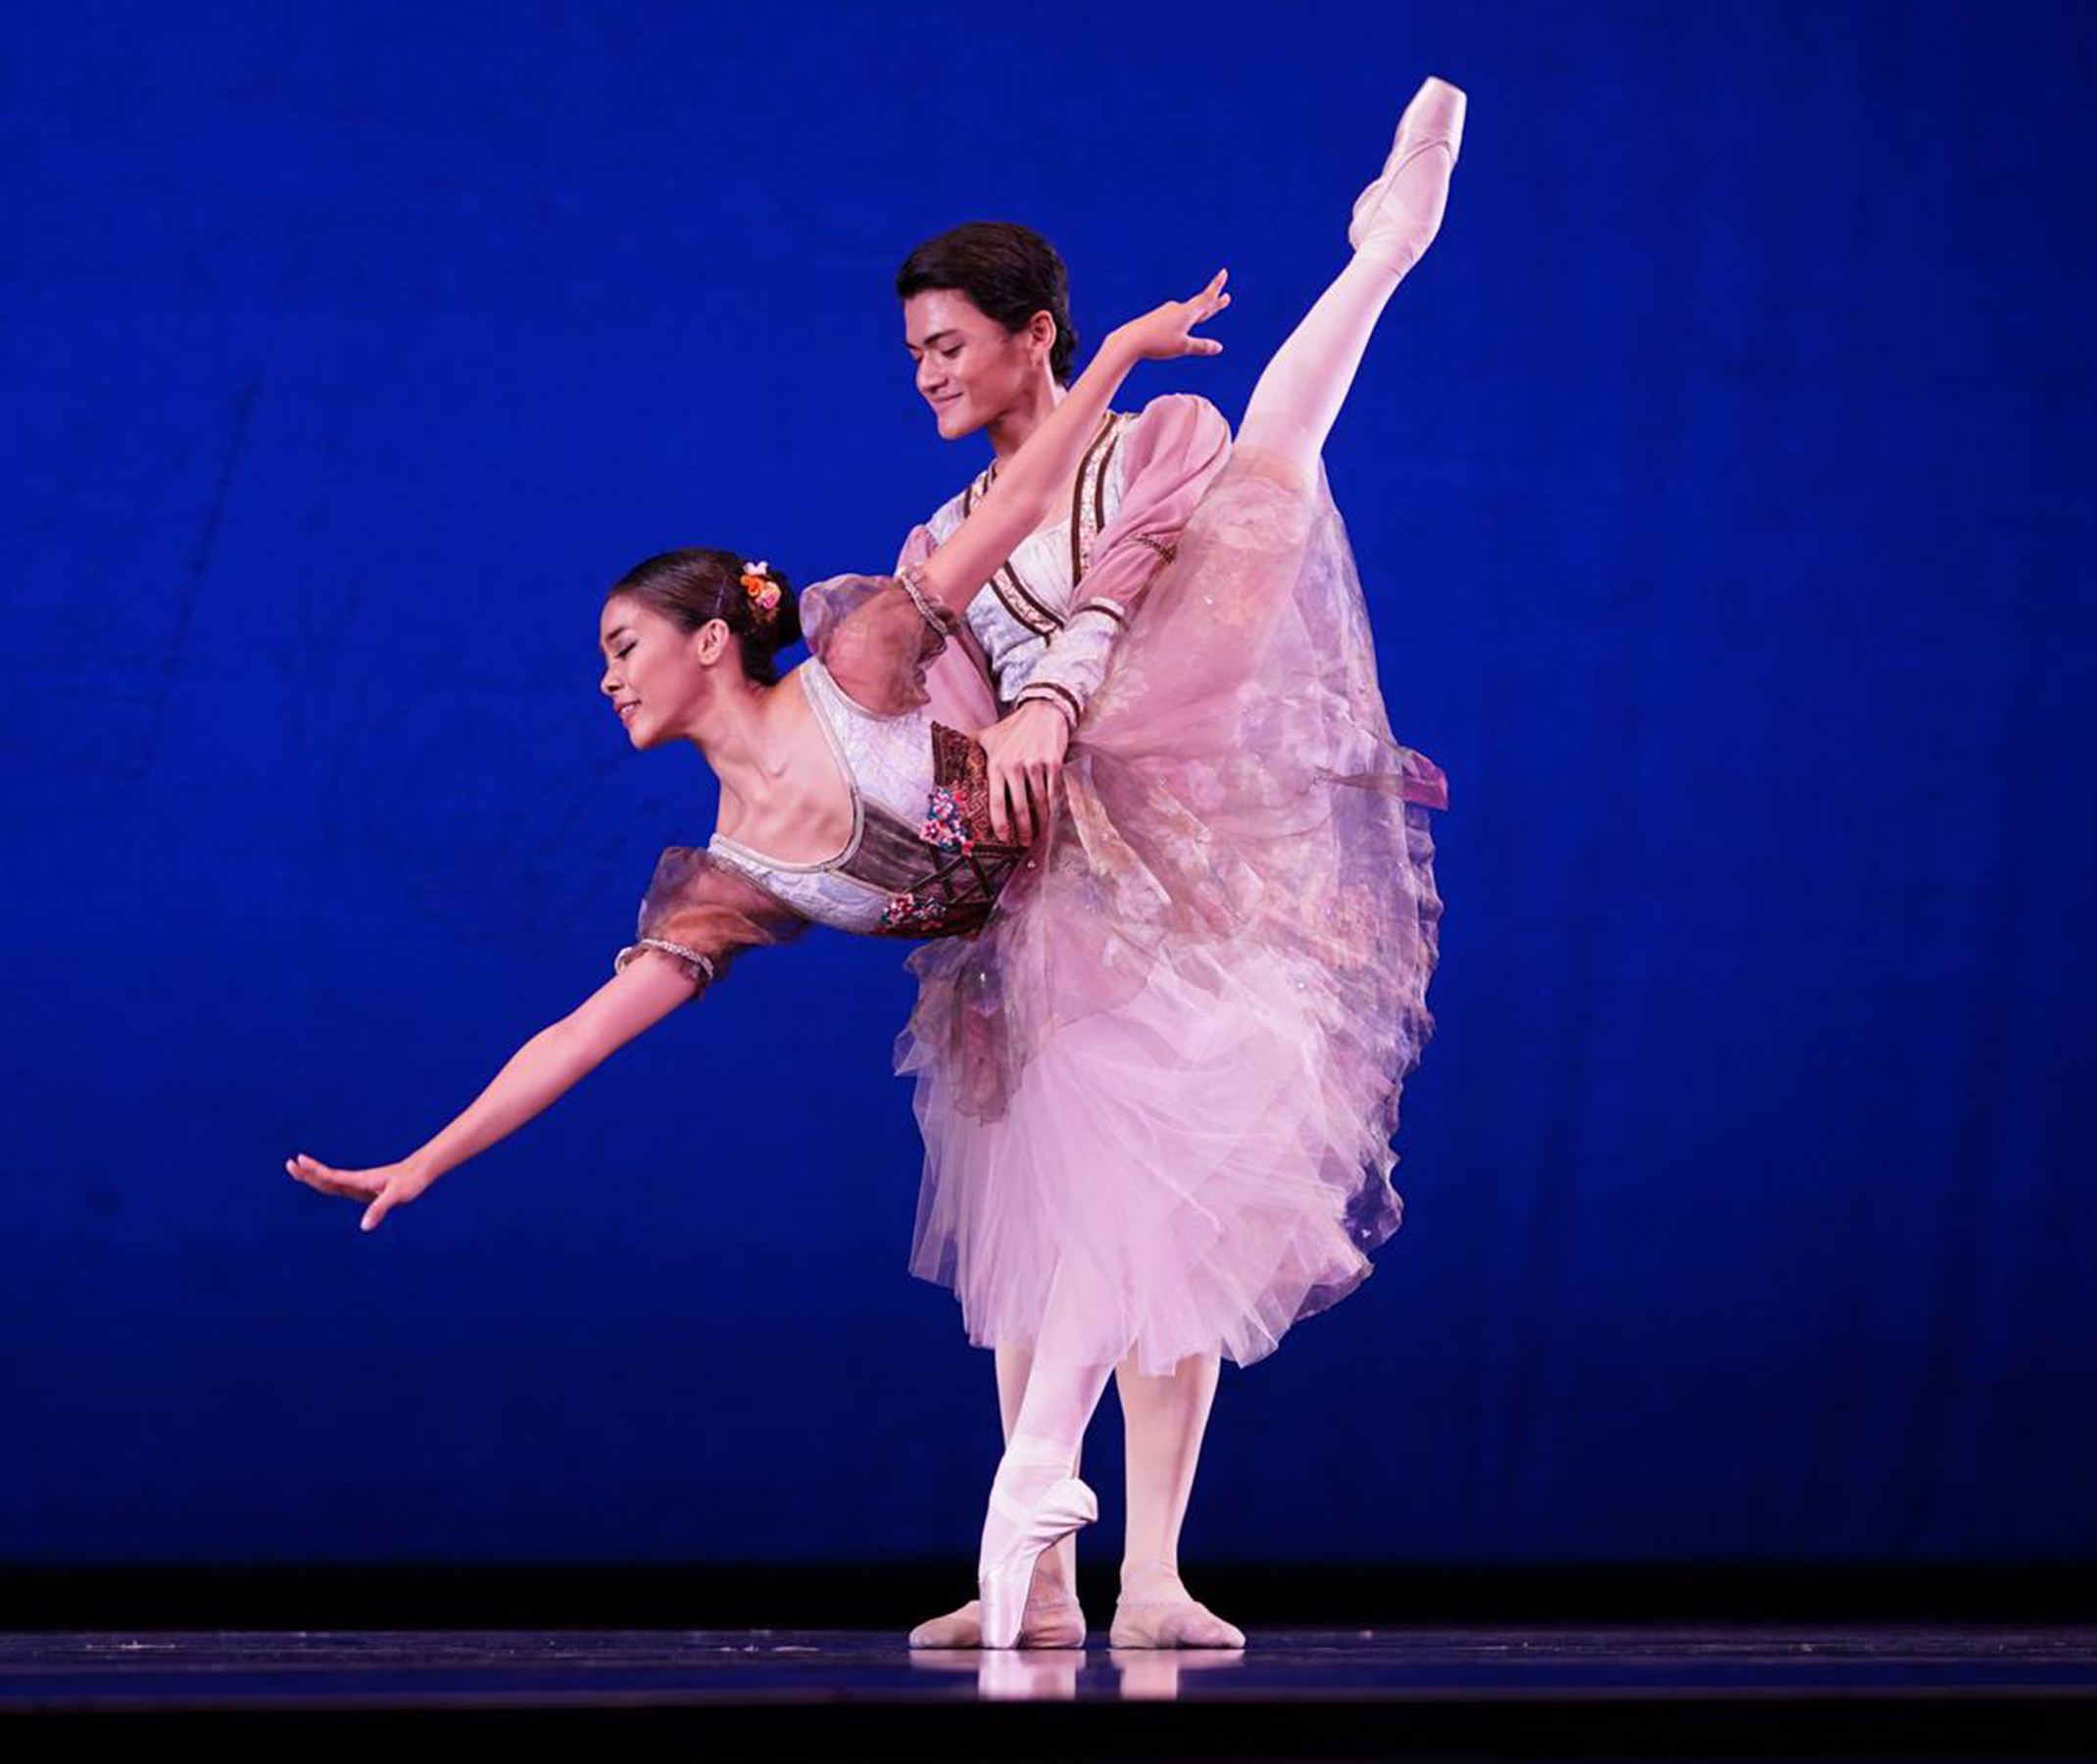 Nicole Barroso and Joshua Enciso, dancing the  Peasant Pas de Deux  at the USA International Ballet Competition, were the first Filipinos to make it to the junior category of the ballet tilt. Photo by Richard Finkelstein/ USA IBC